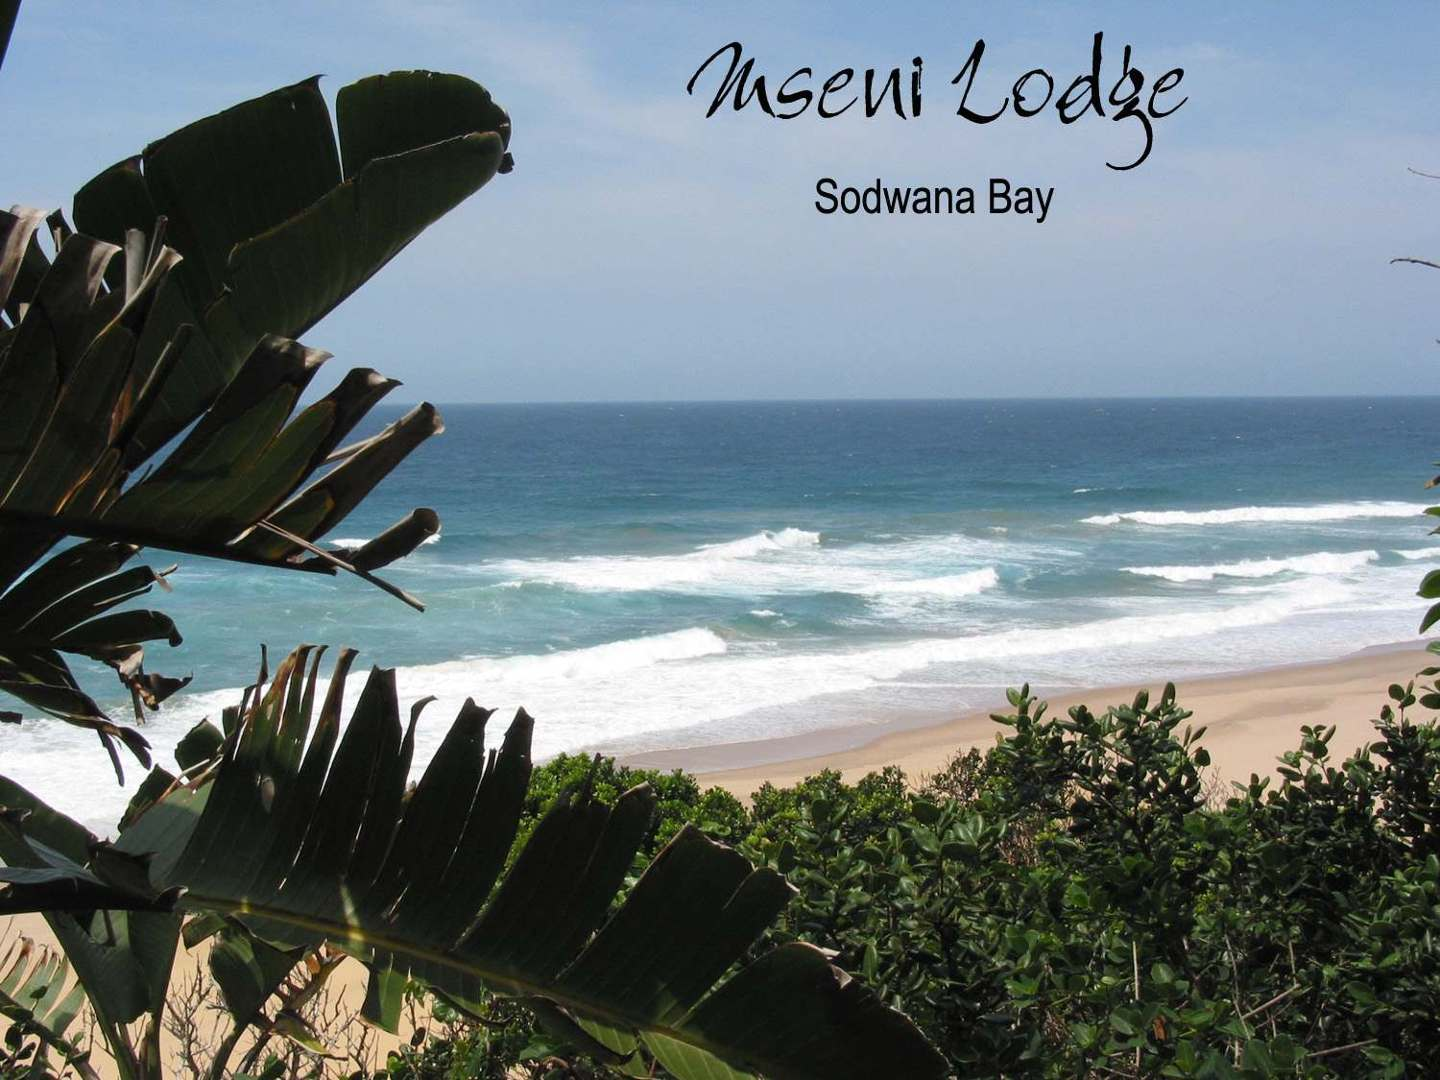 Mseni Lodge Sodwana Bay South Africa